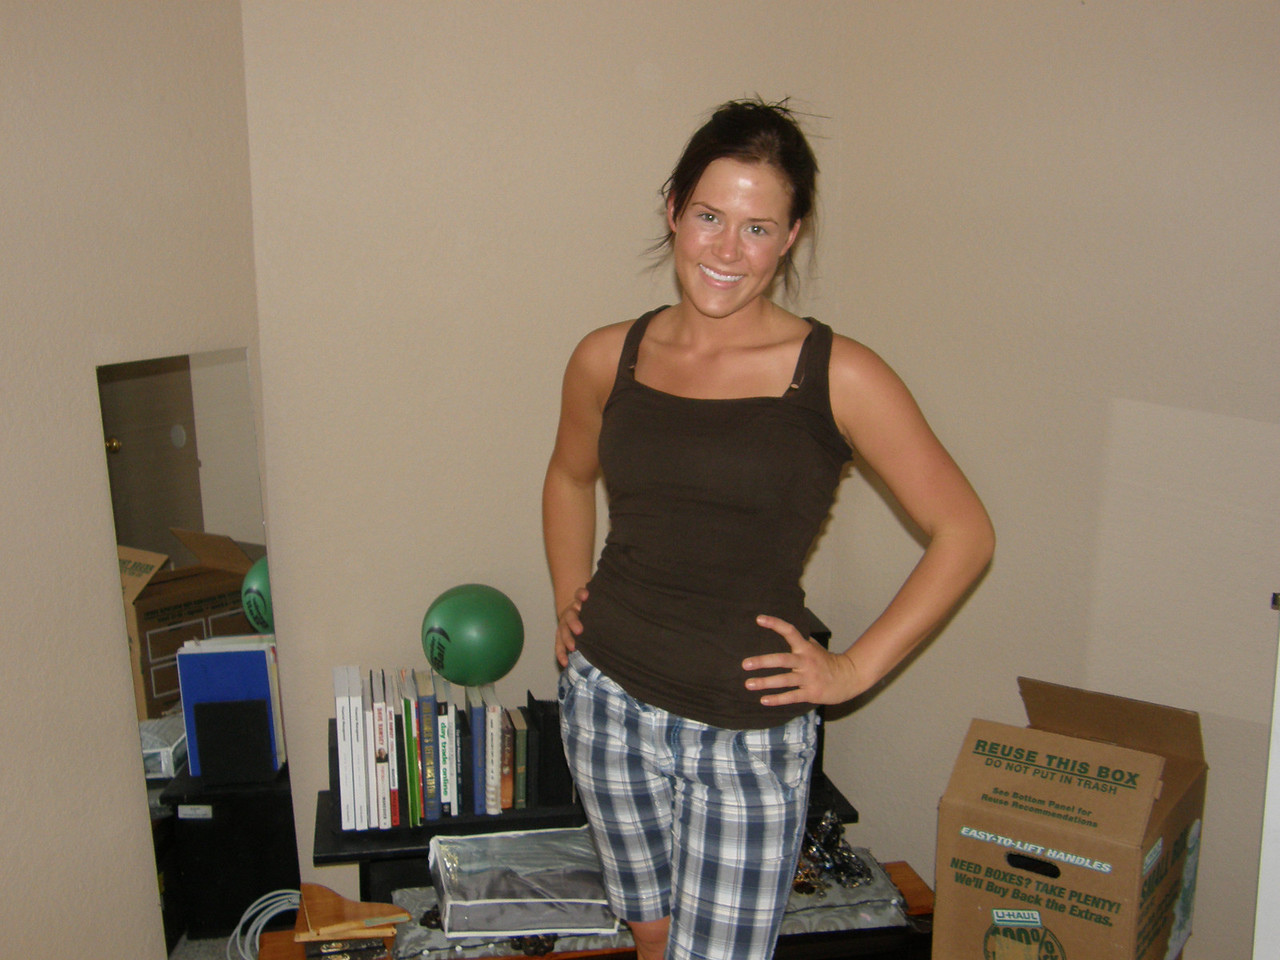 Sarah Jane posing in front of some of her stuff.   Sarah's not sweating is she?